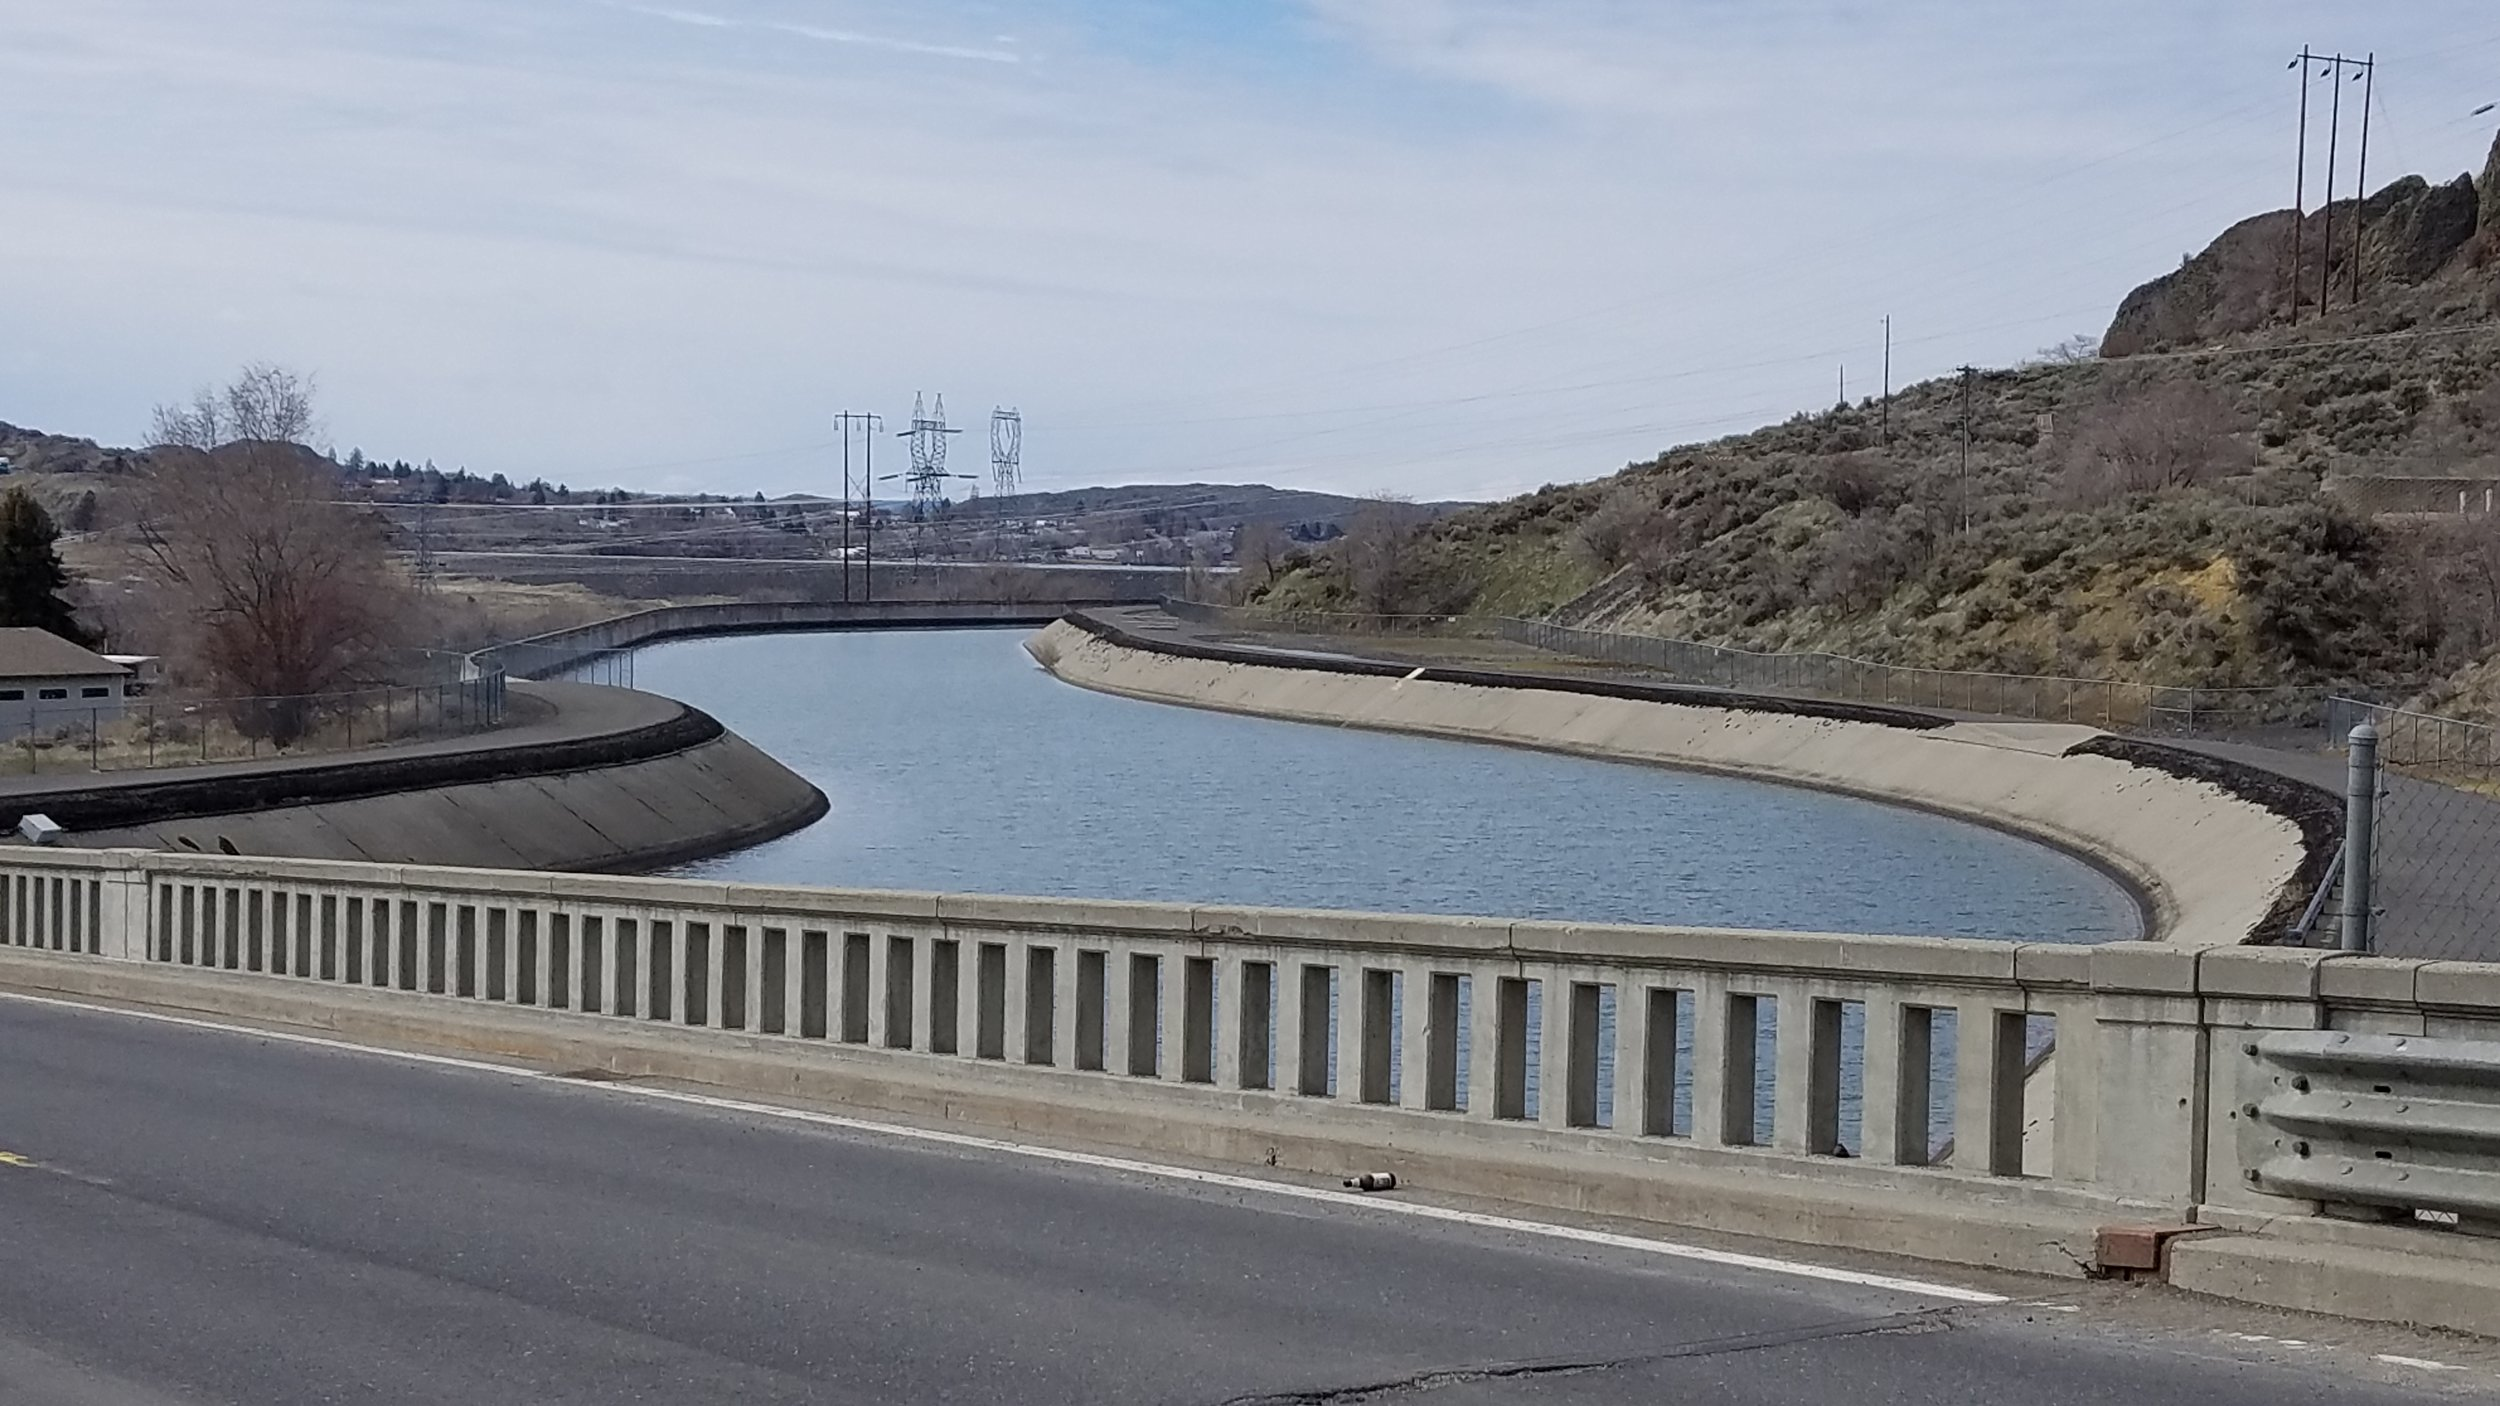 Water from the Columbia River is diverted from the Grand Coulee Dam and pumped up into Banks Lake via this engineered canal. (Photo by M.M. Ruth)